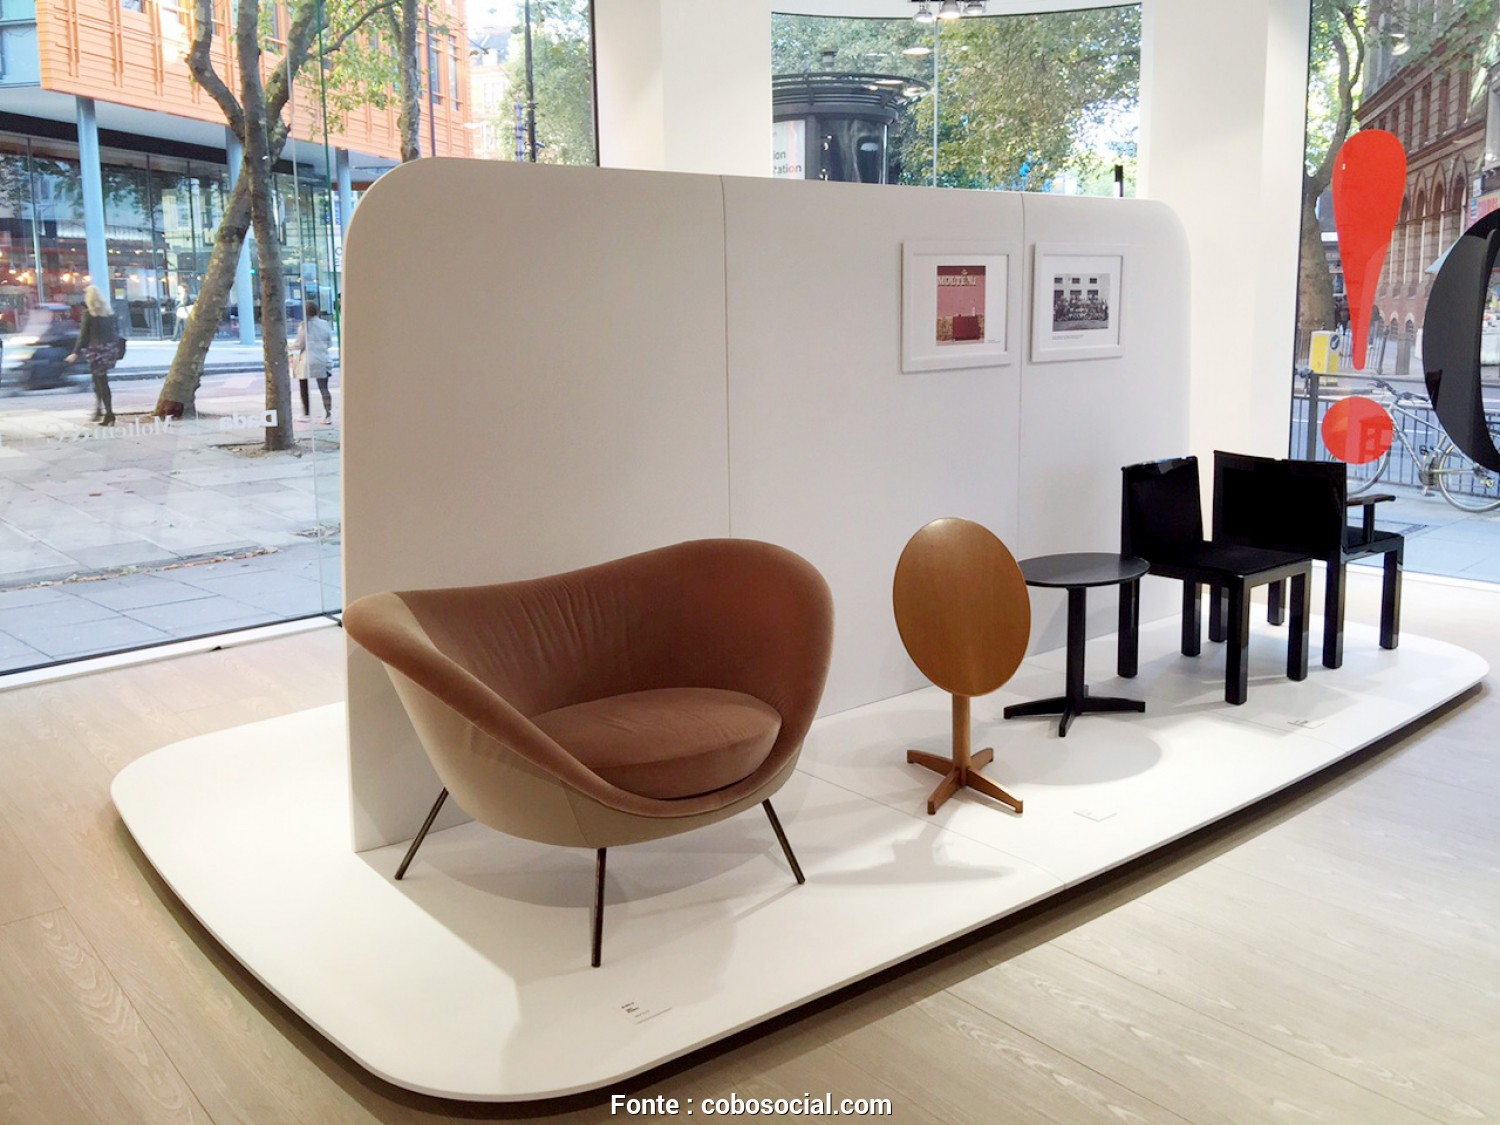 Q Molteni Lettings, Buono Followed By, Success In Milan,, Exhibition, Become, Of, Highlights Of